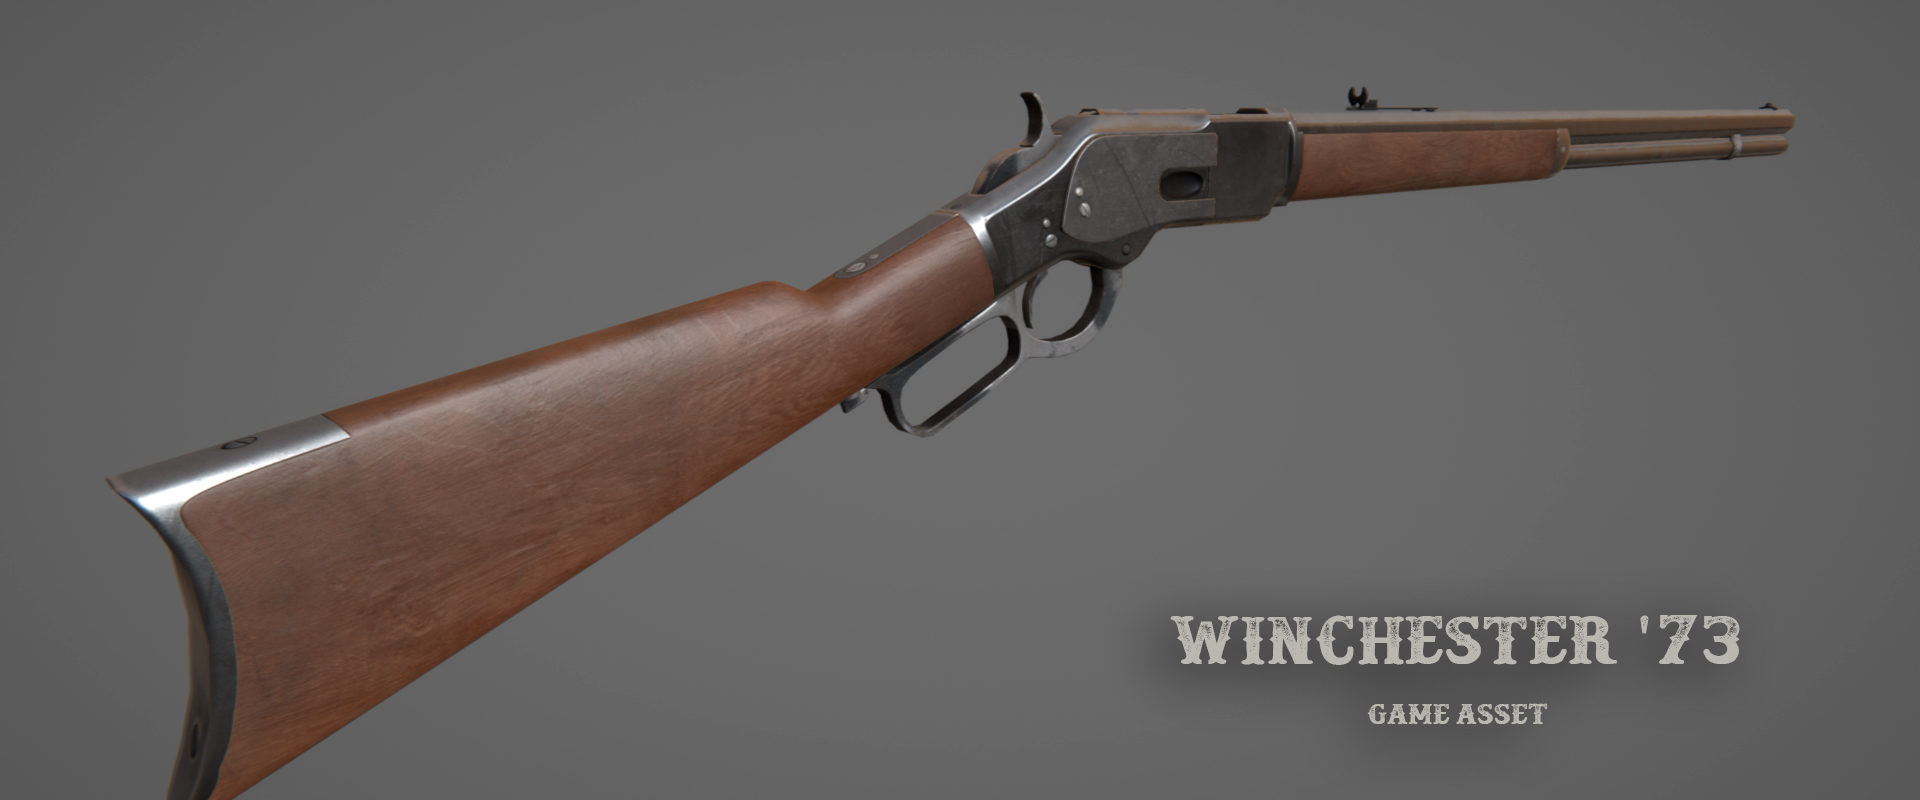 Permalink to: Winchester 73